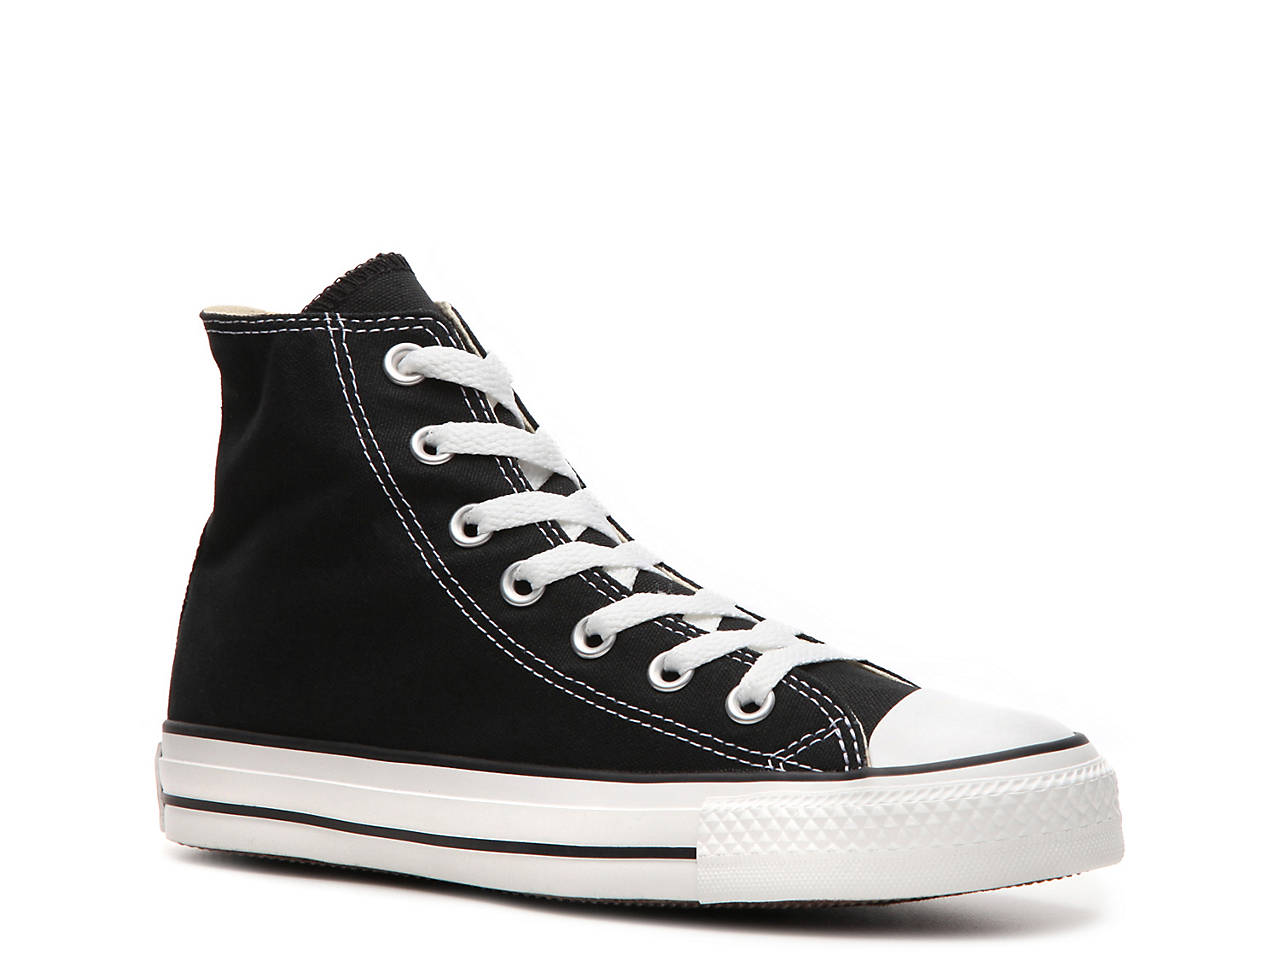 c54ca6c2b4c3 Converse Chuck Taylor All Star High-Top Sneaker - Women s Women s ...